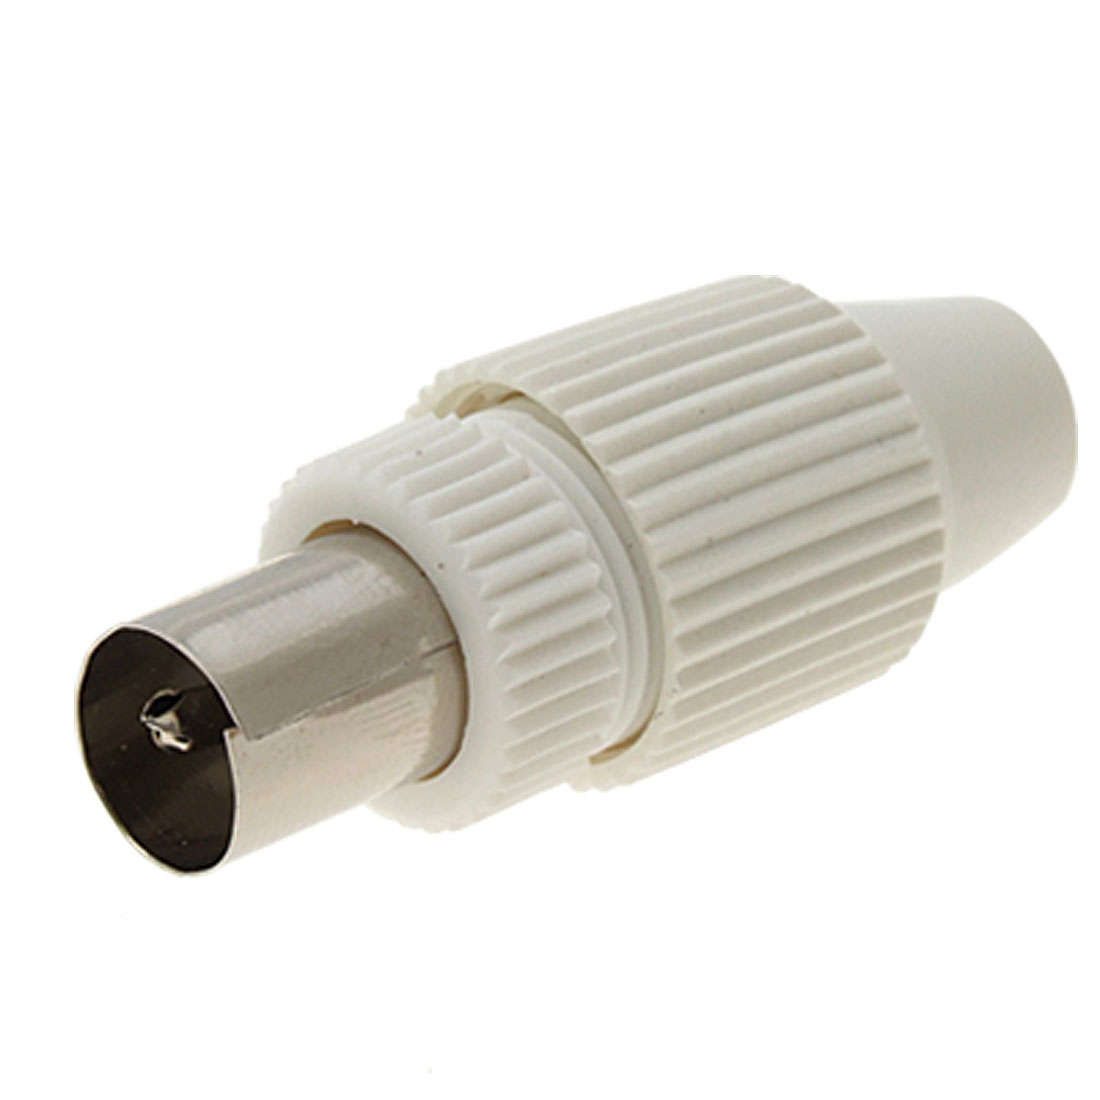 TV FM Atenna PAL Male RG6 Aerial RF Coxial Connector